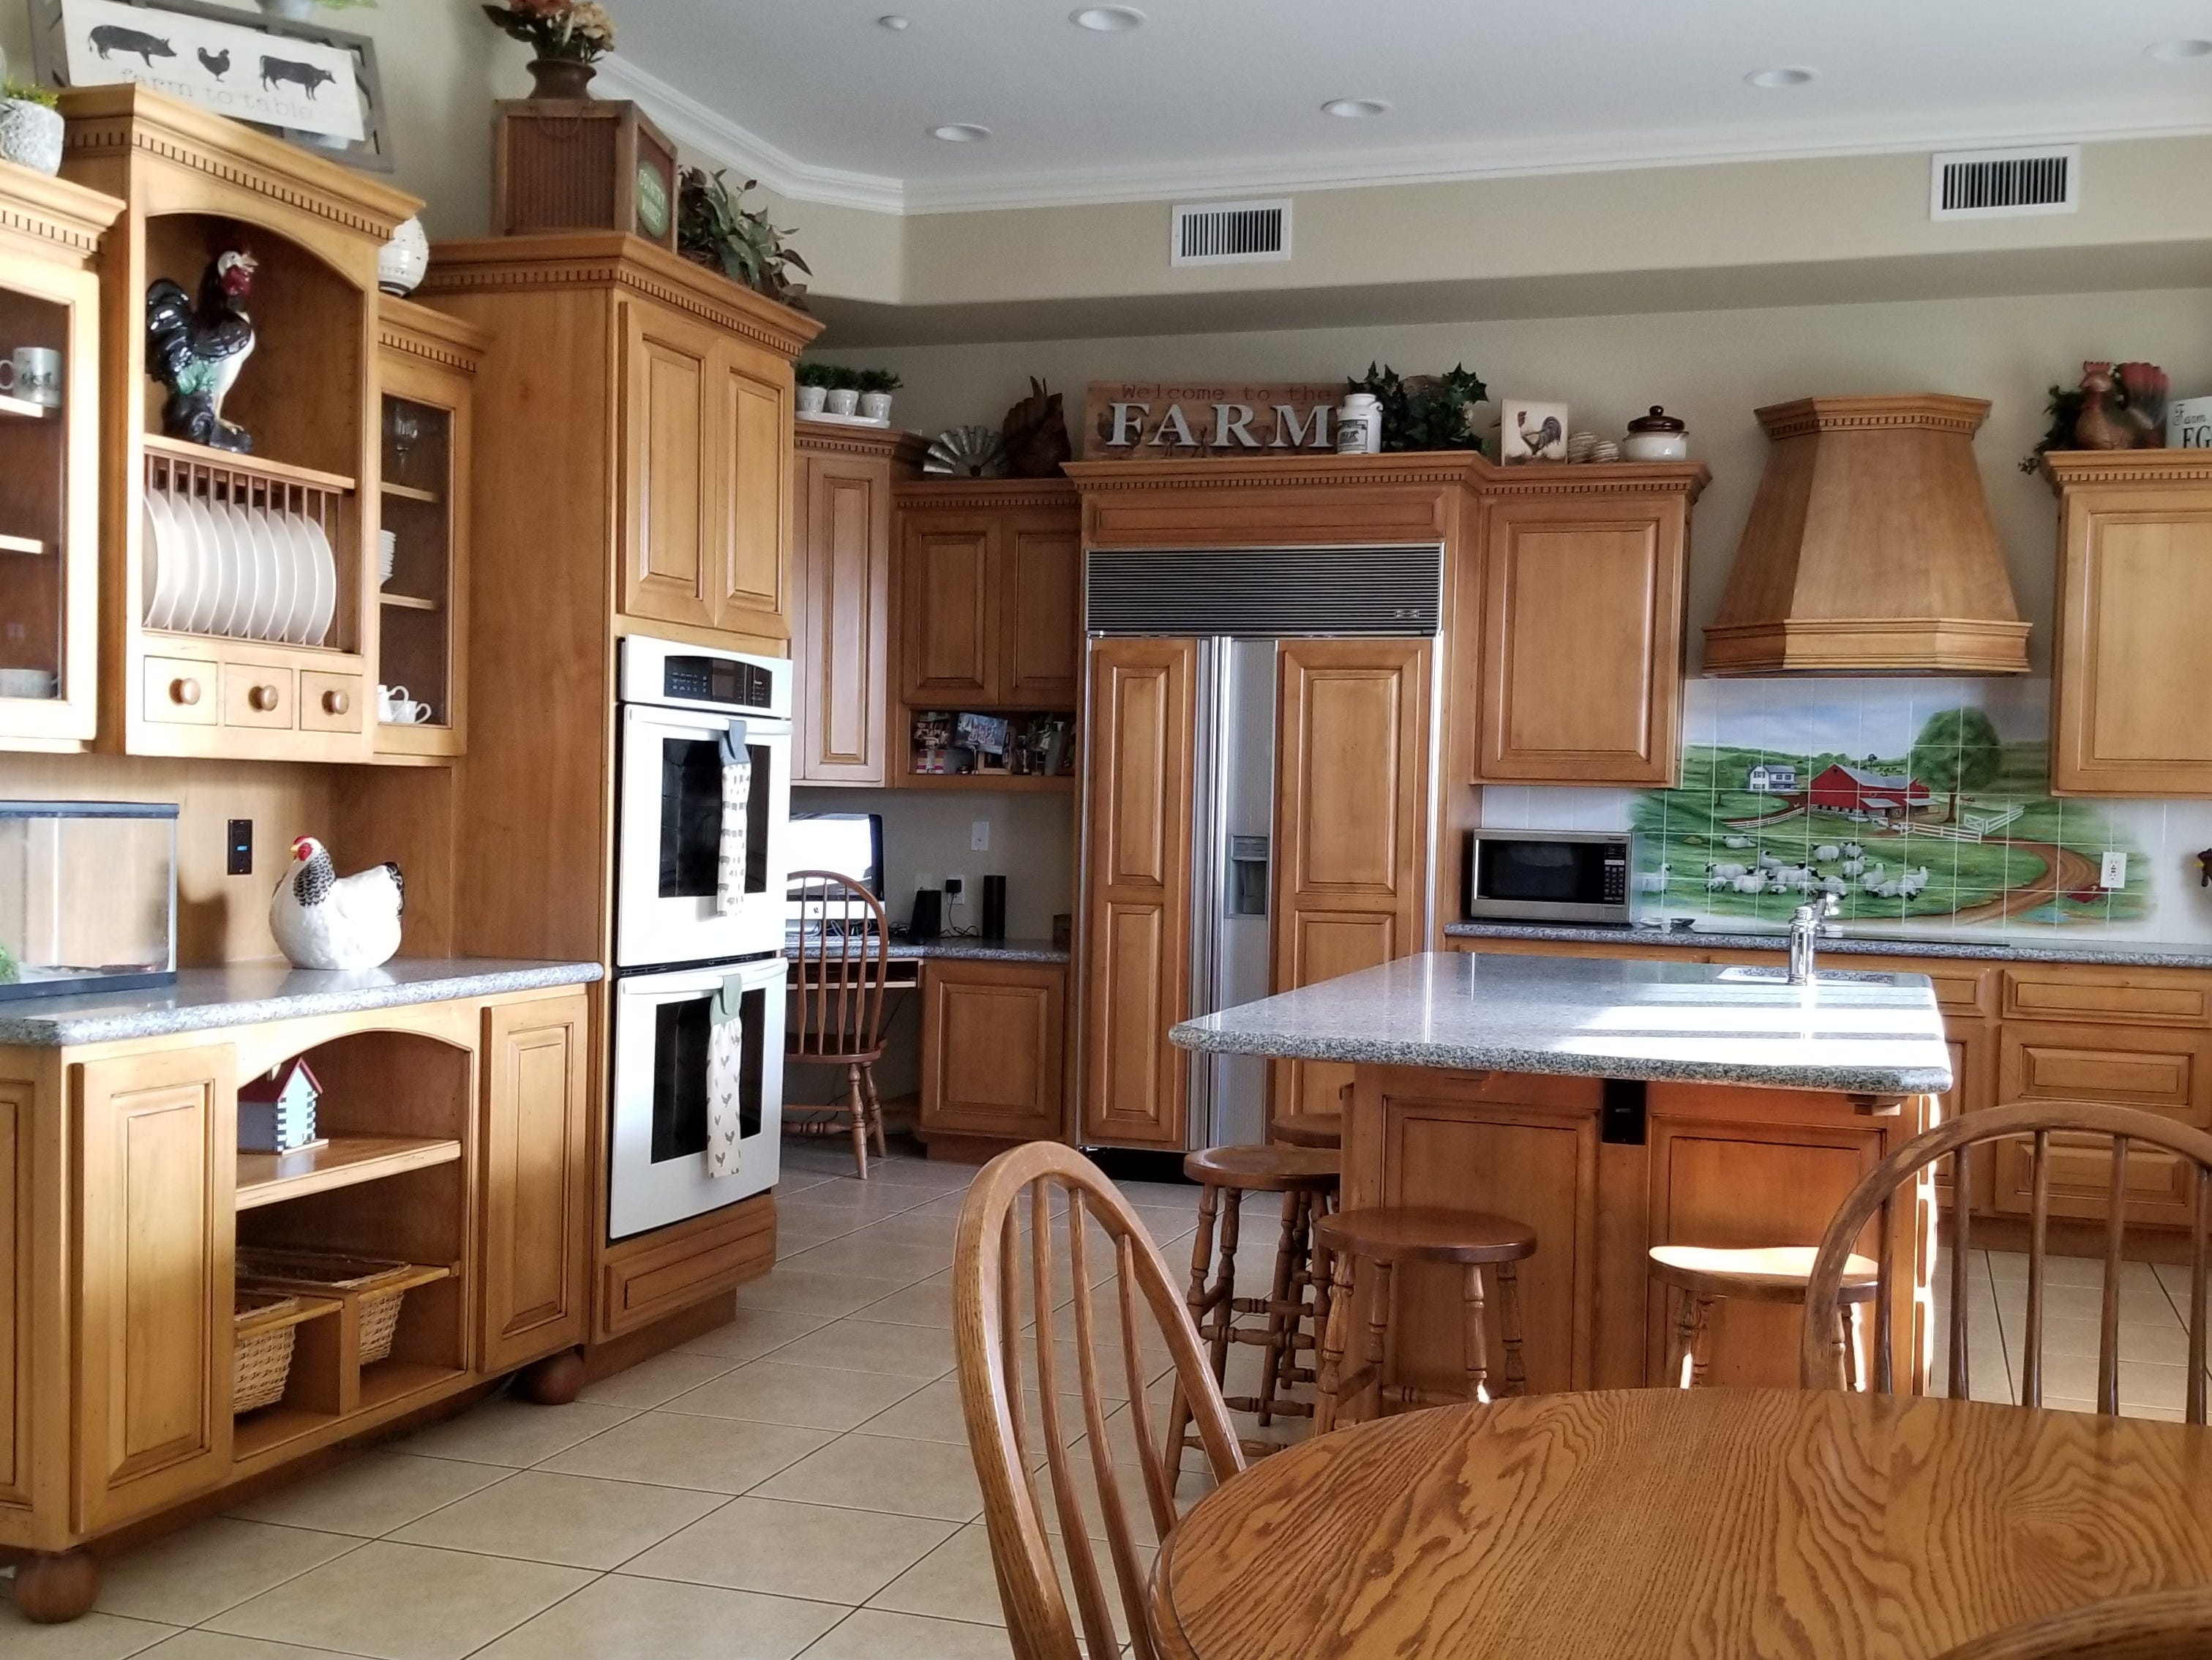 Double ovens and a built-in hutch provide ample storage since the family opted for an office vs. a dedicated dining room.  Bar stools add additional seating. Farm accents throughout the home bring to bear the ever present love for farm life.